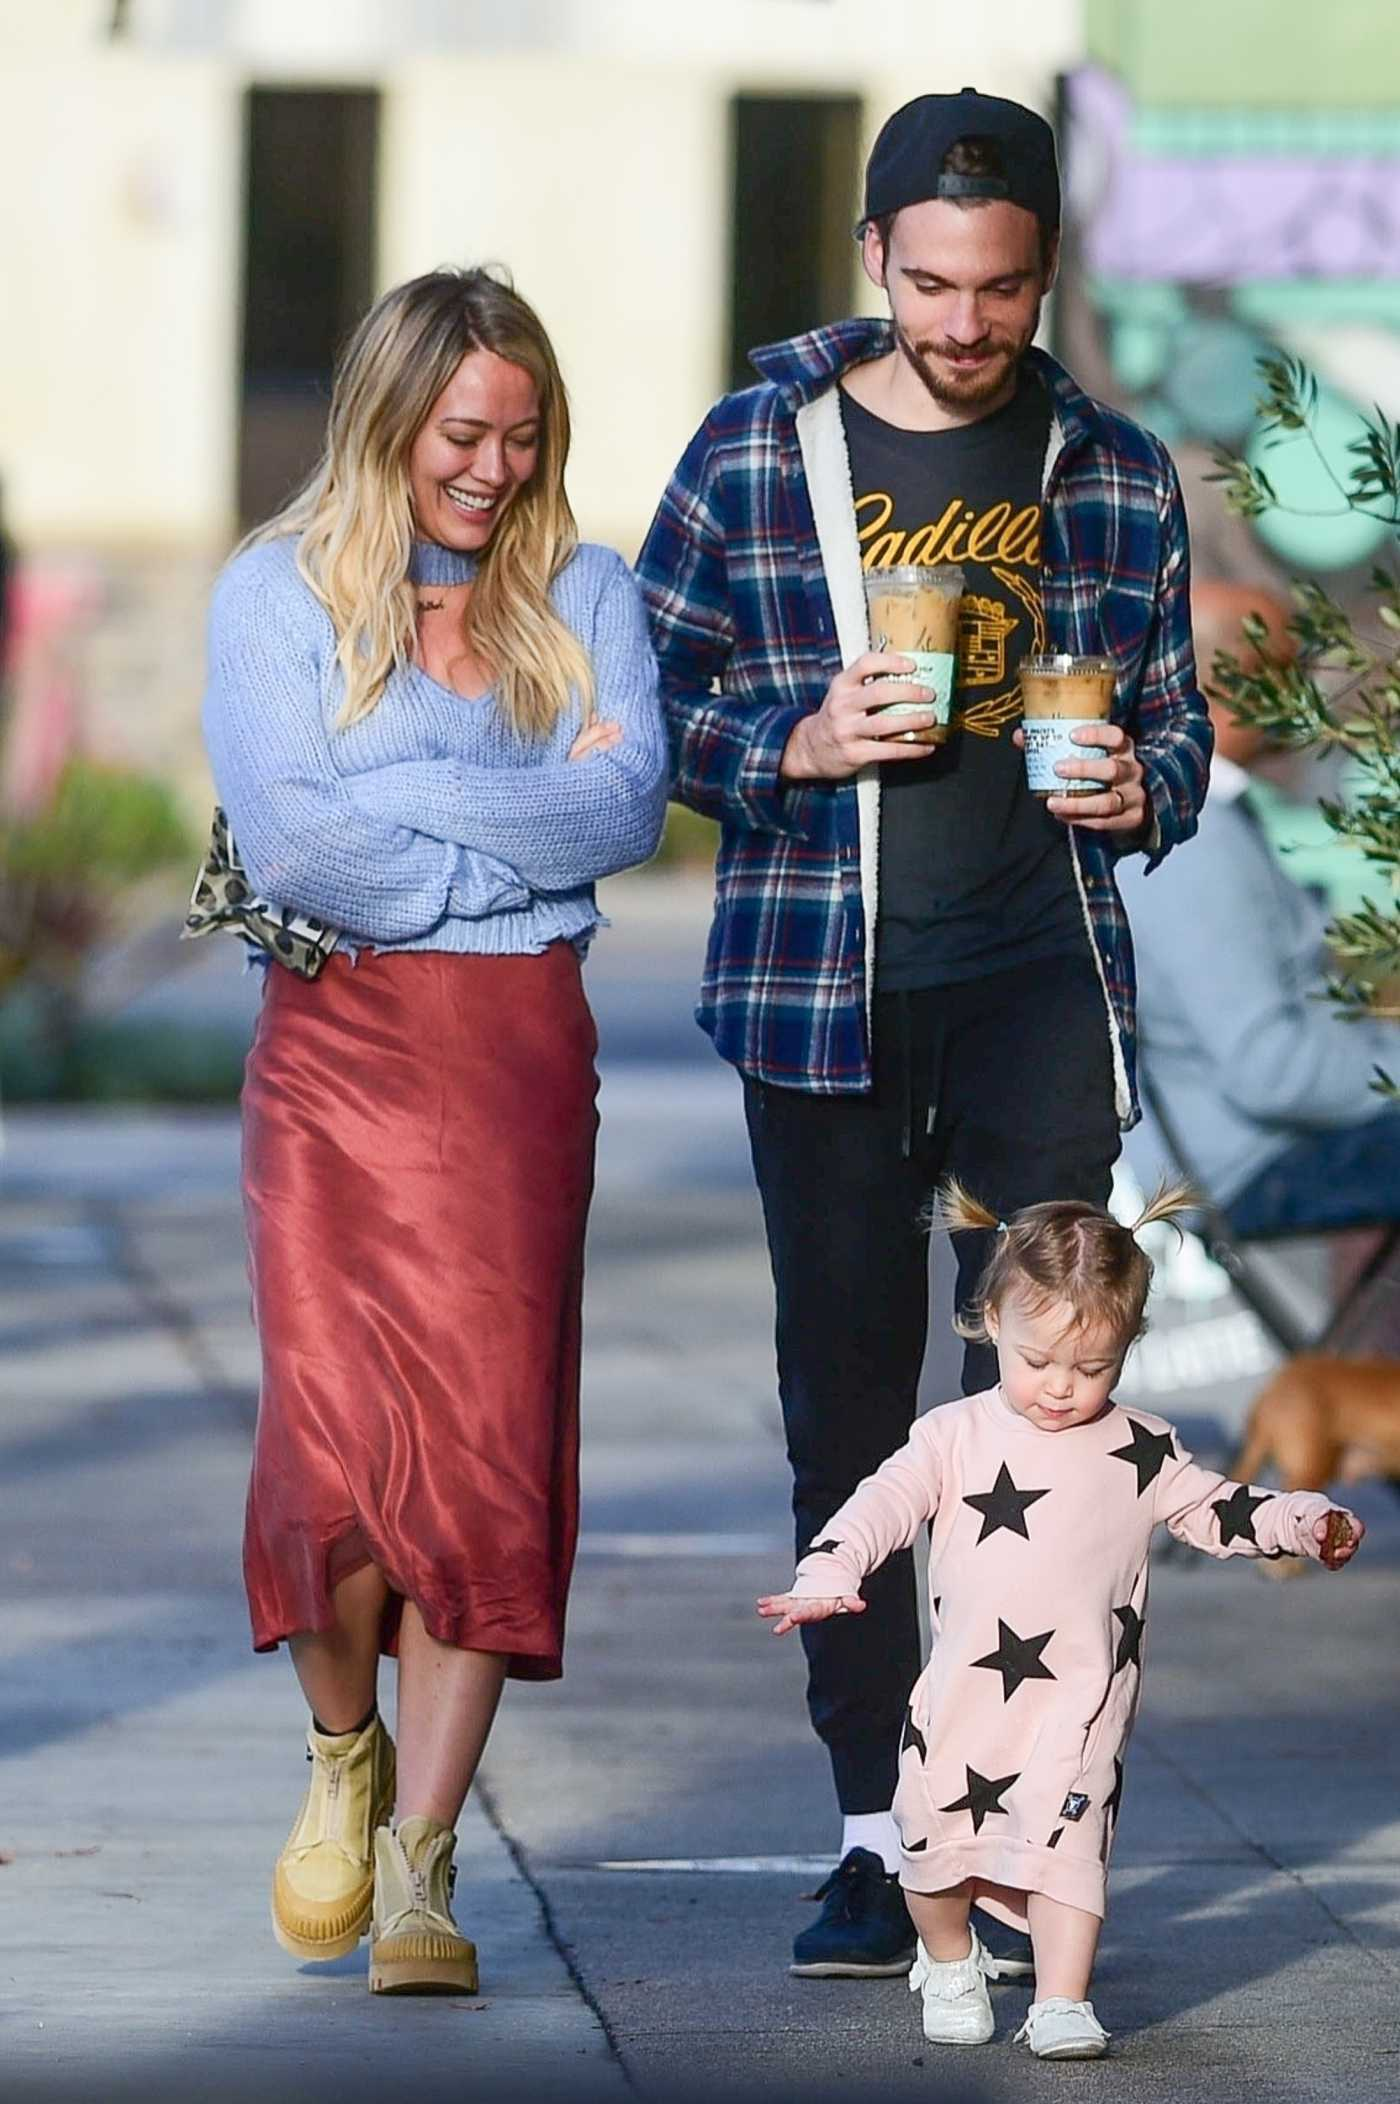 Hilary Duff in a Red Skirt Was Seen Out with Matthew Koma in Los Angeles 01/16/2020